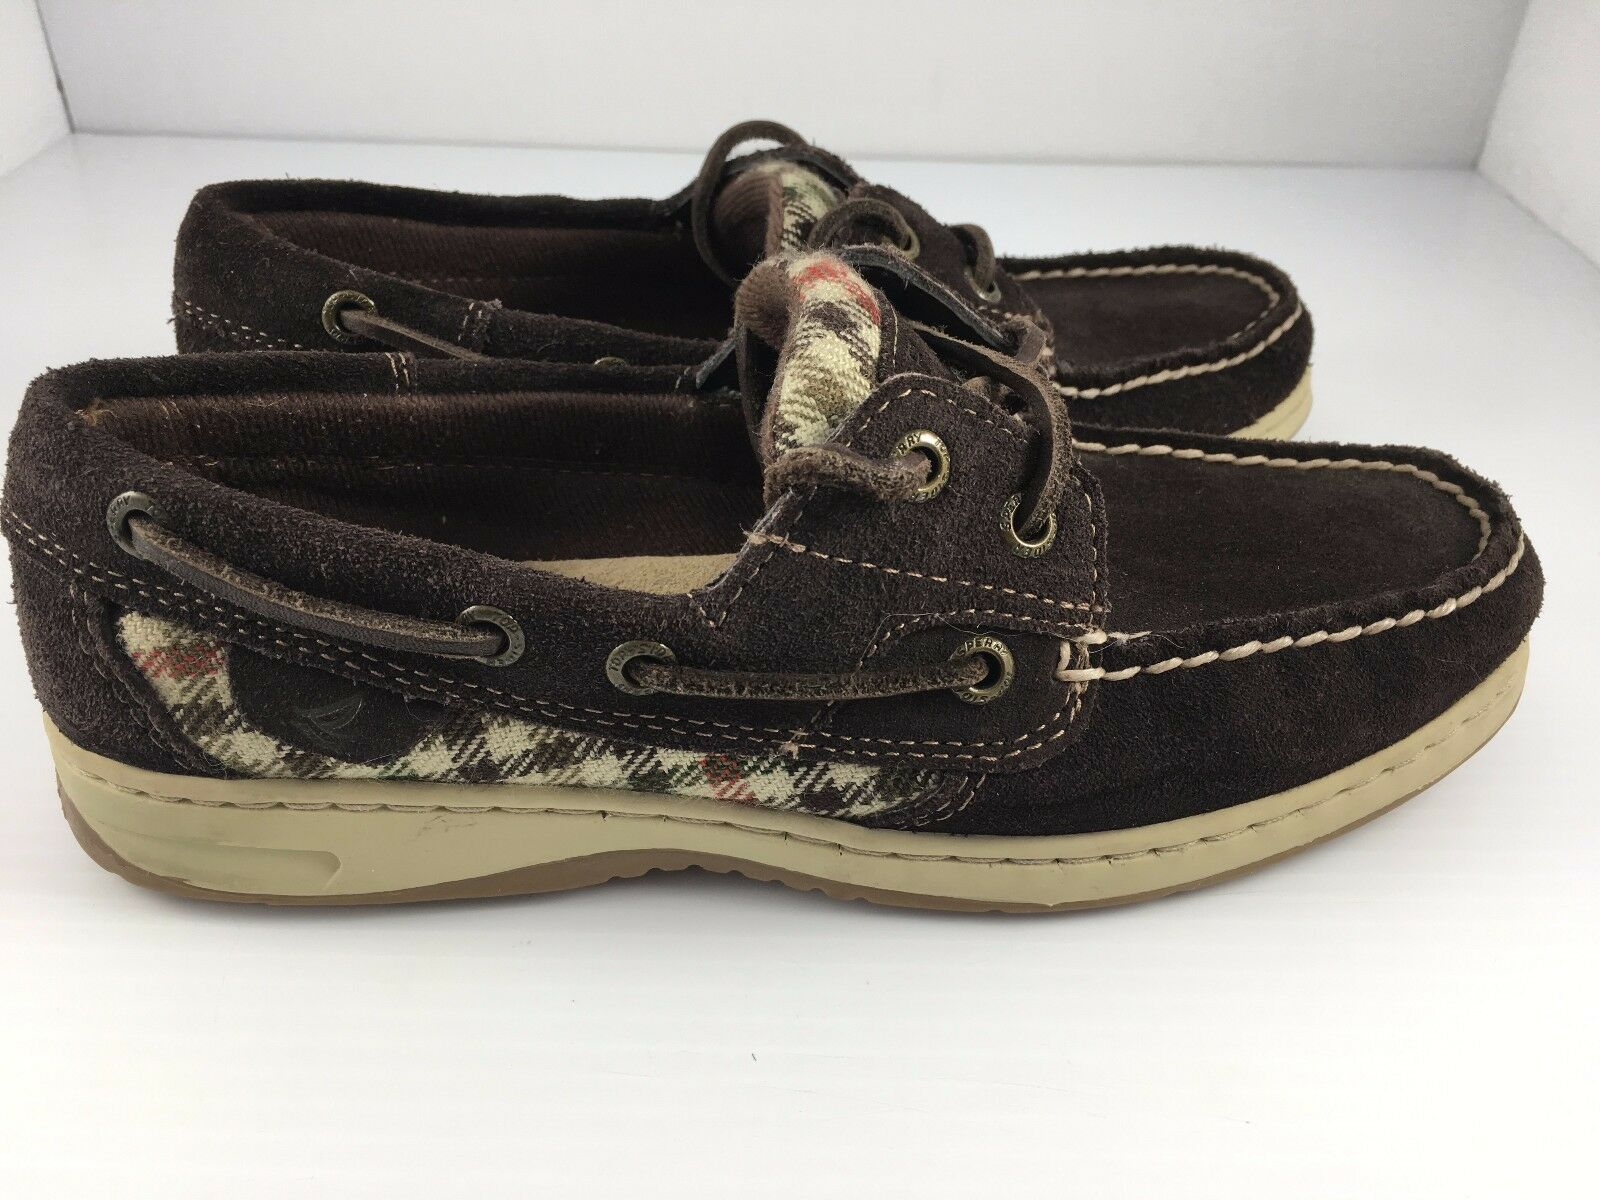 Sperry Top Sider blueefish 2 Eye Women's Chocolate Suede Boat shoes size 6